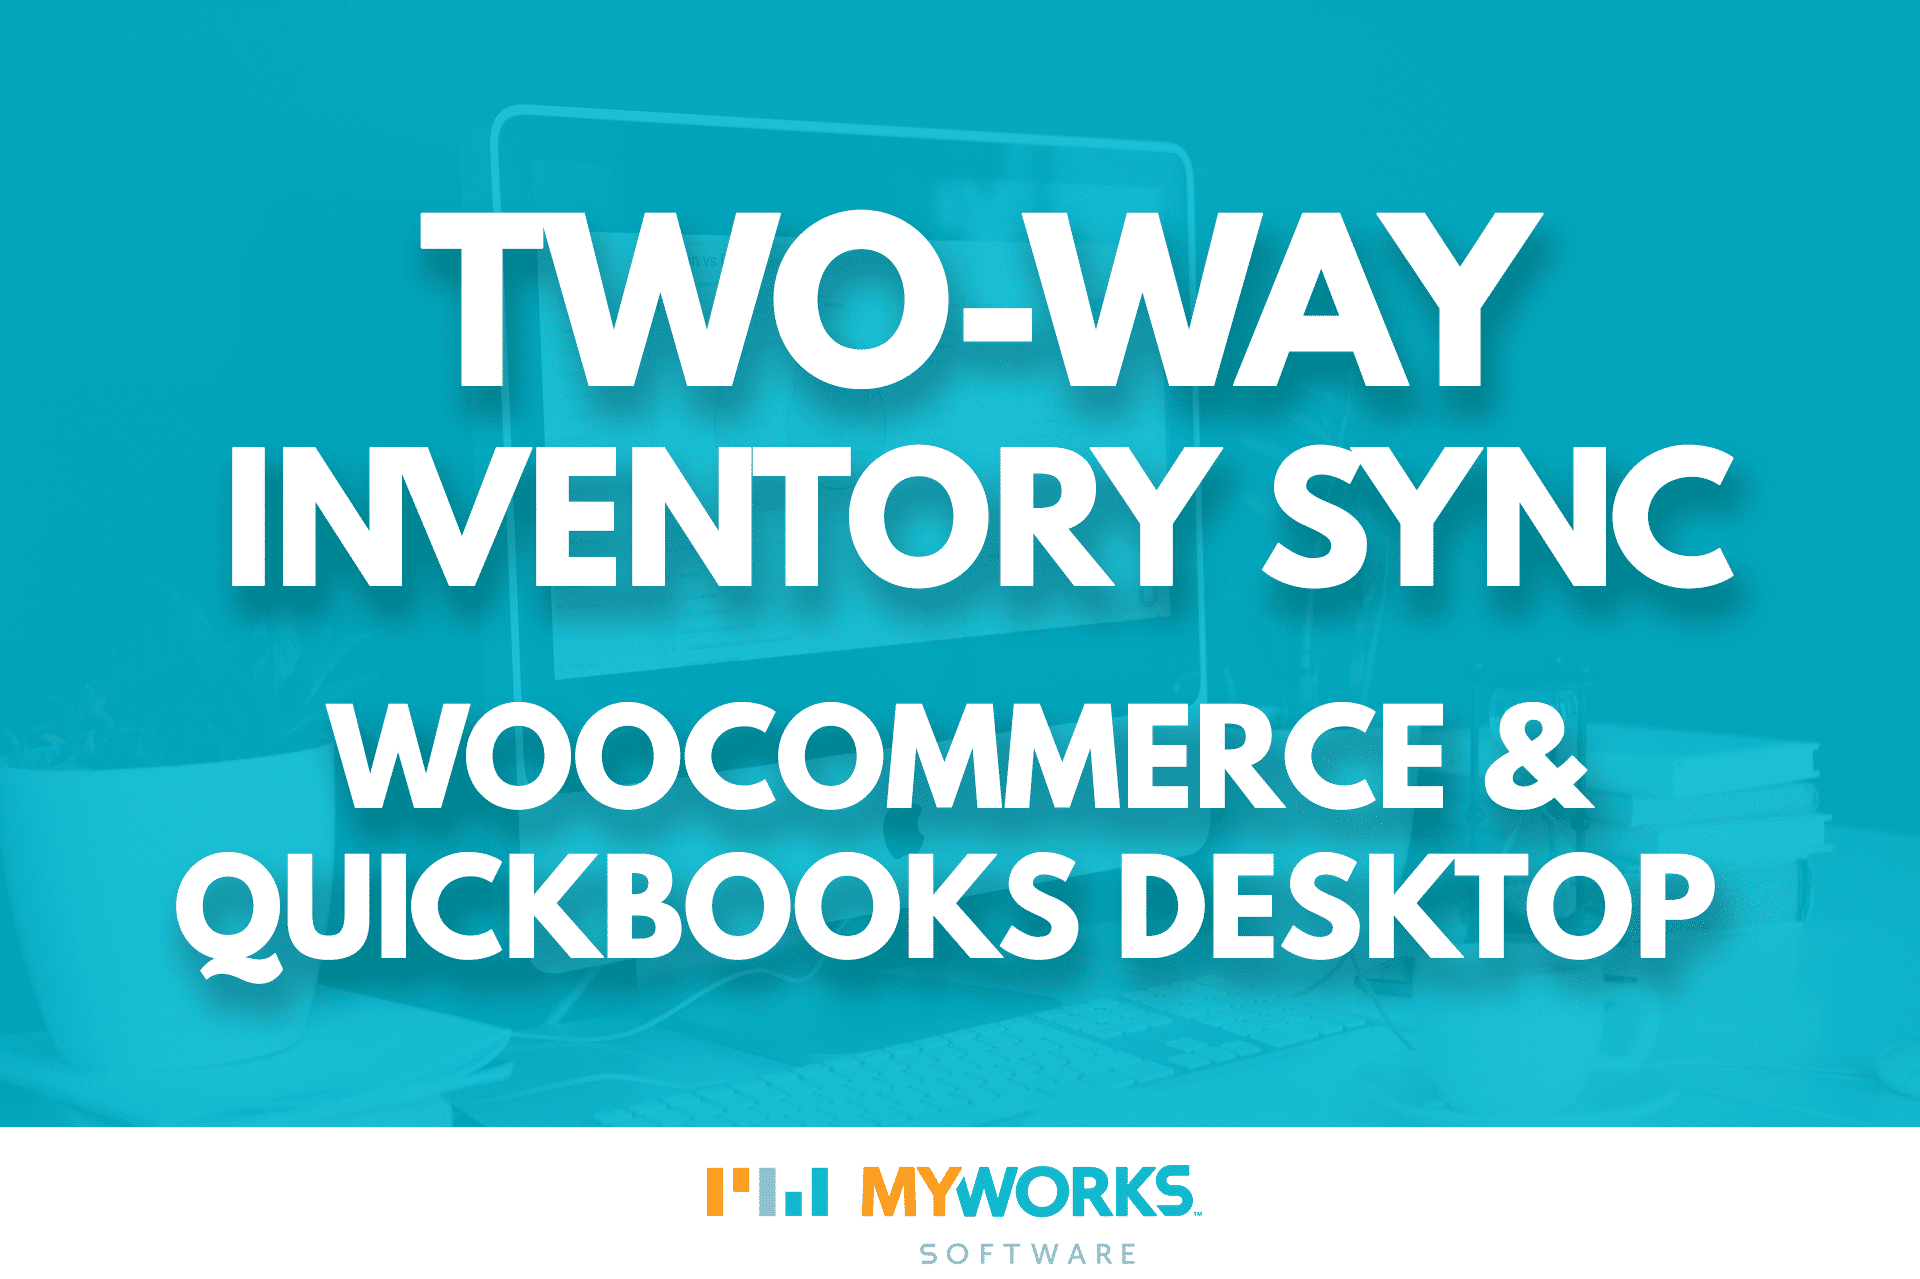 Two way inventory sync for QuickBooks Desktop + WooCommerce